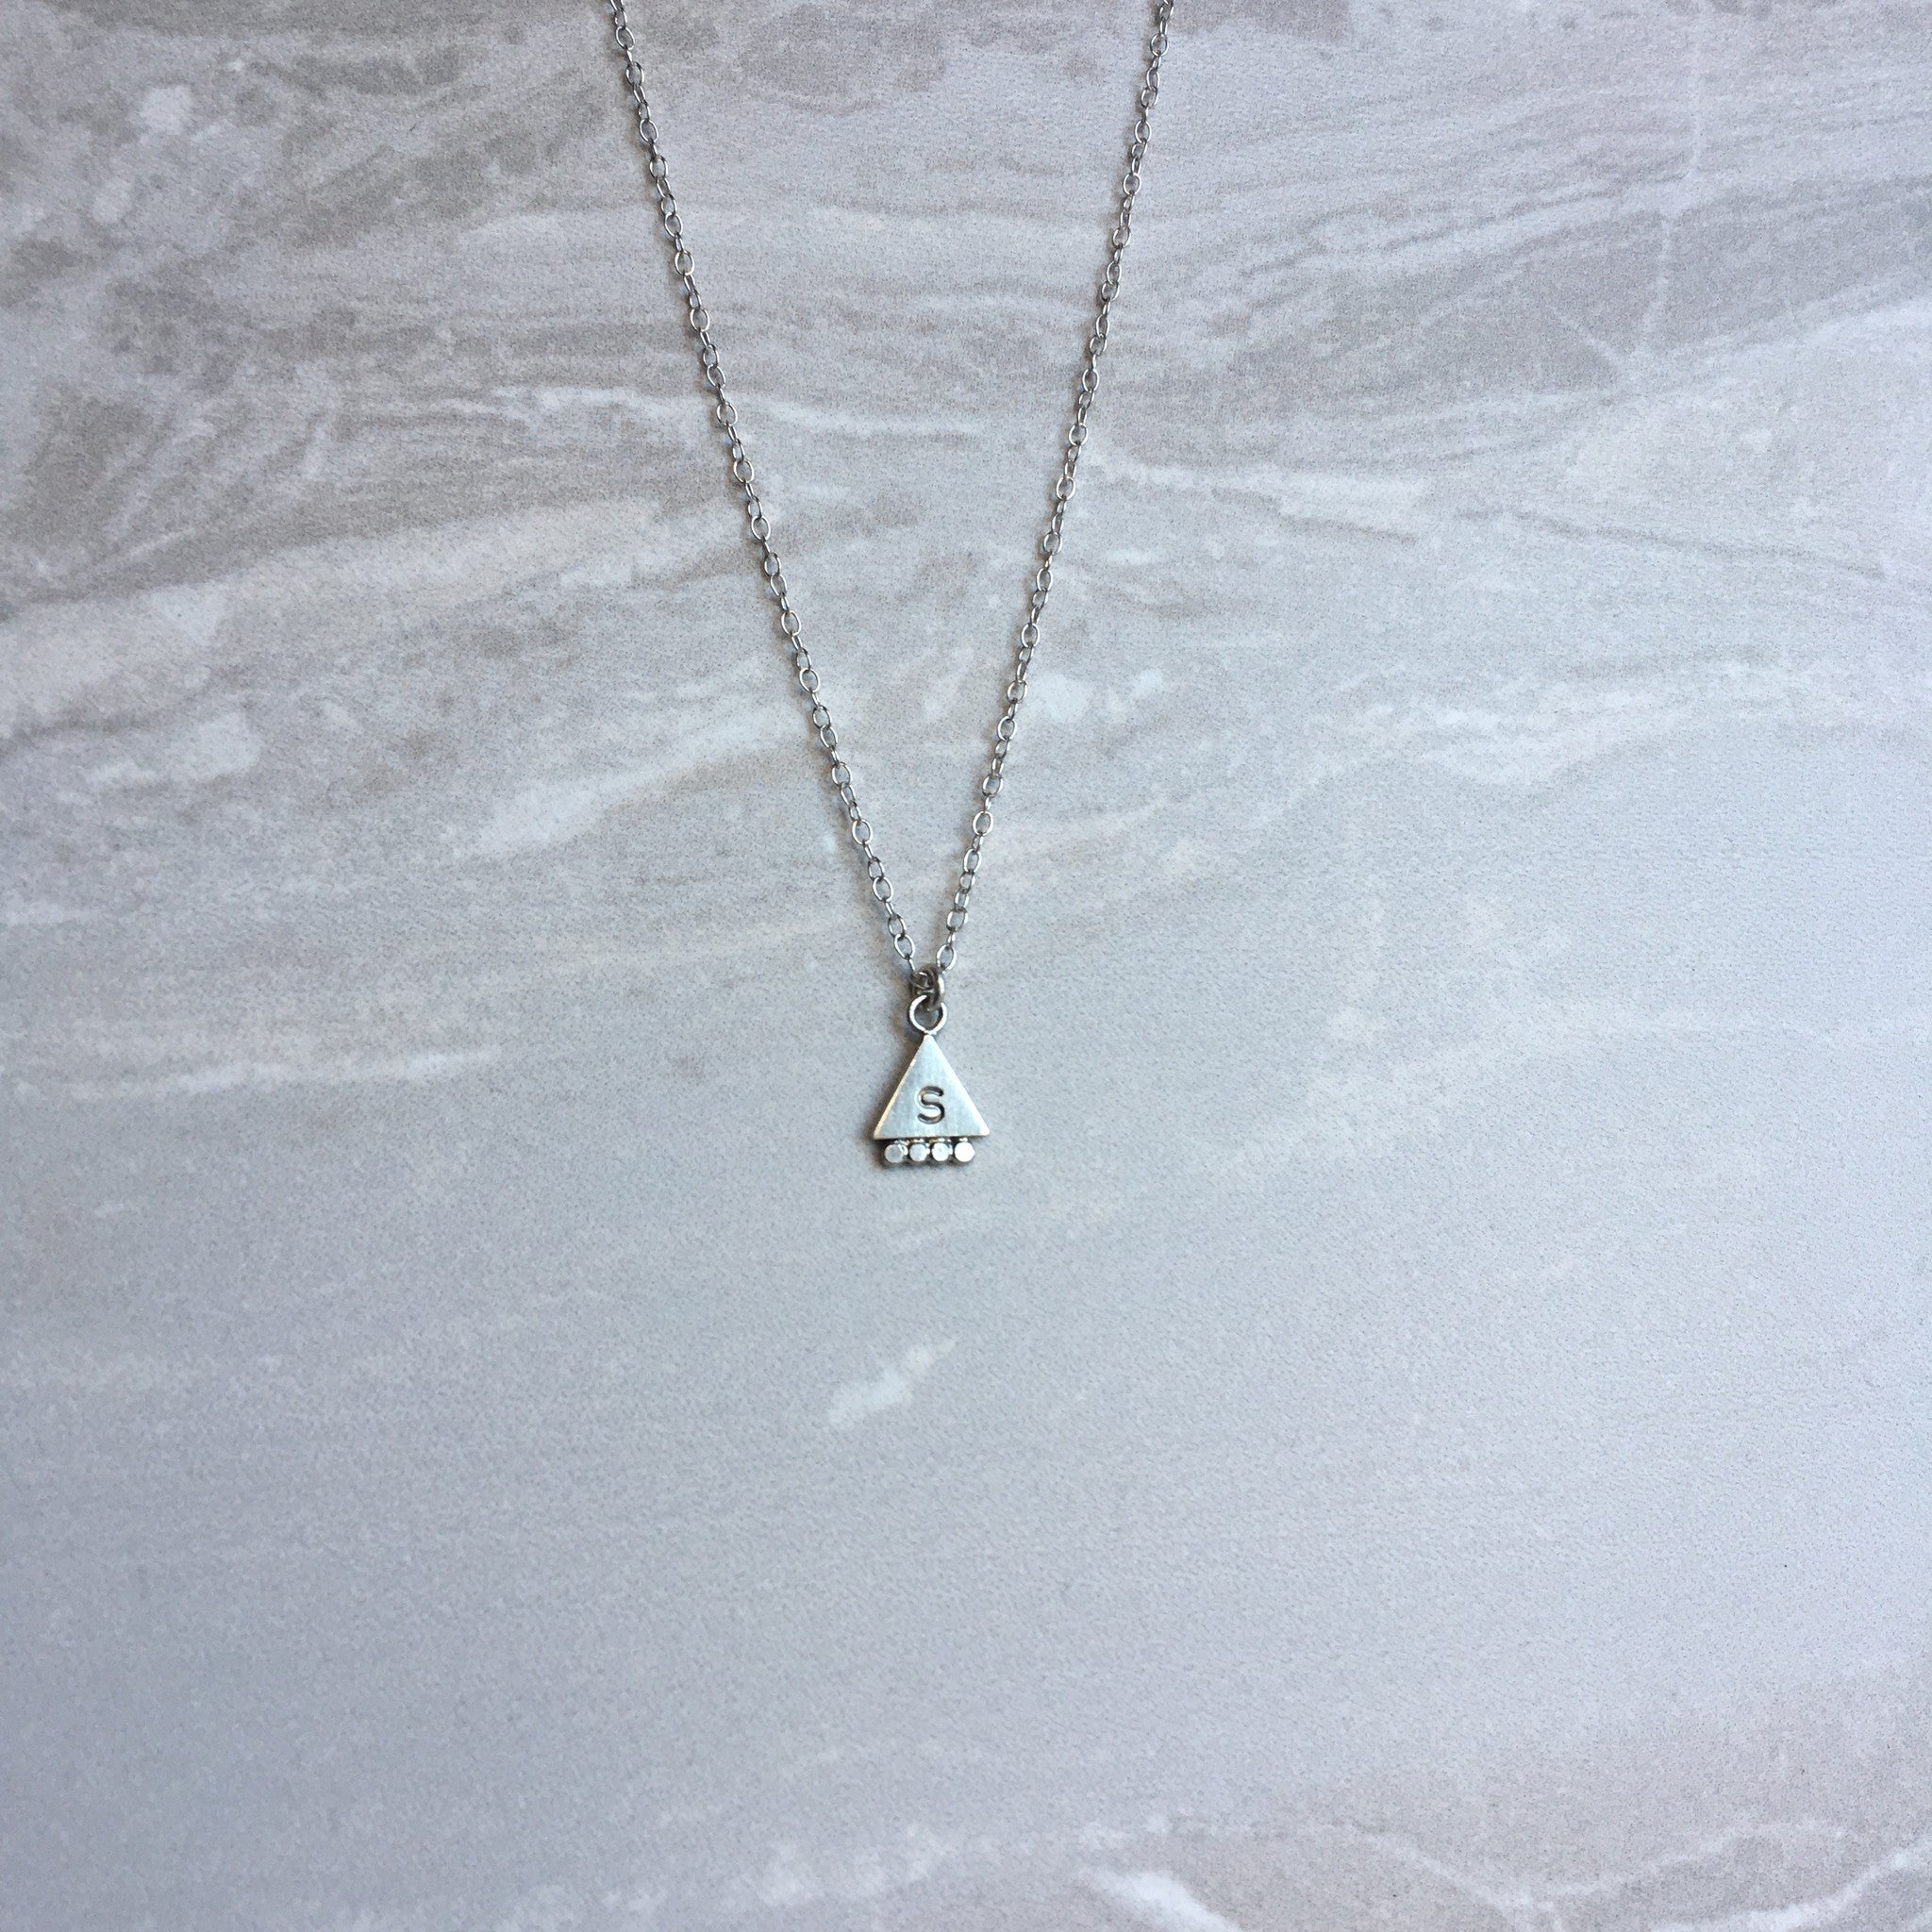 Personalised Pyramid necklace